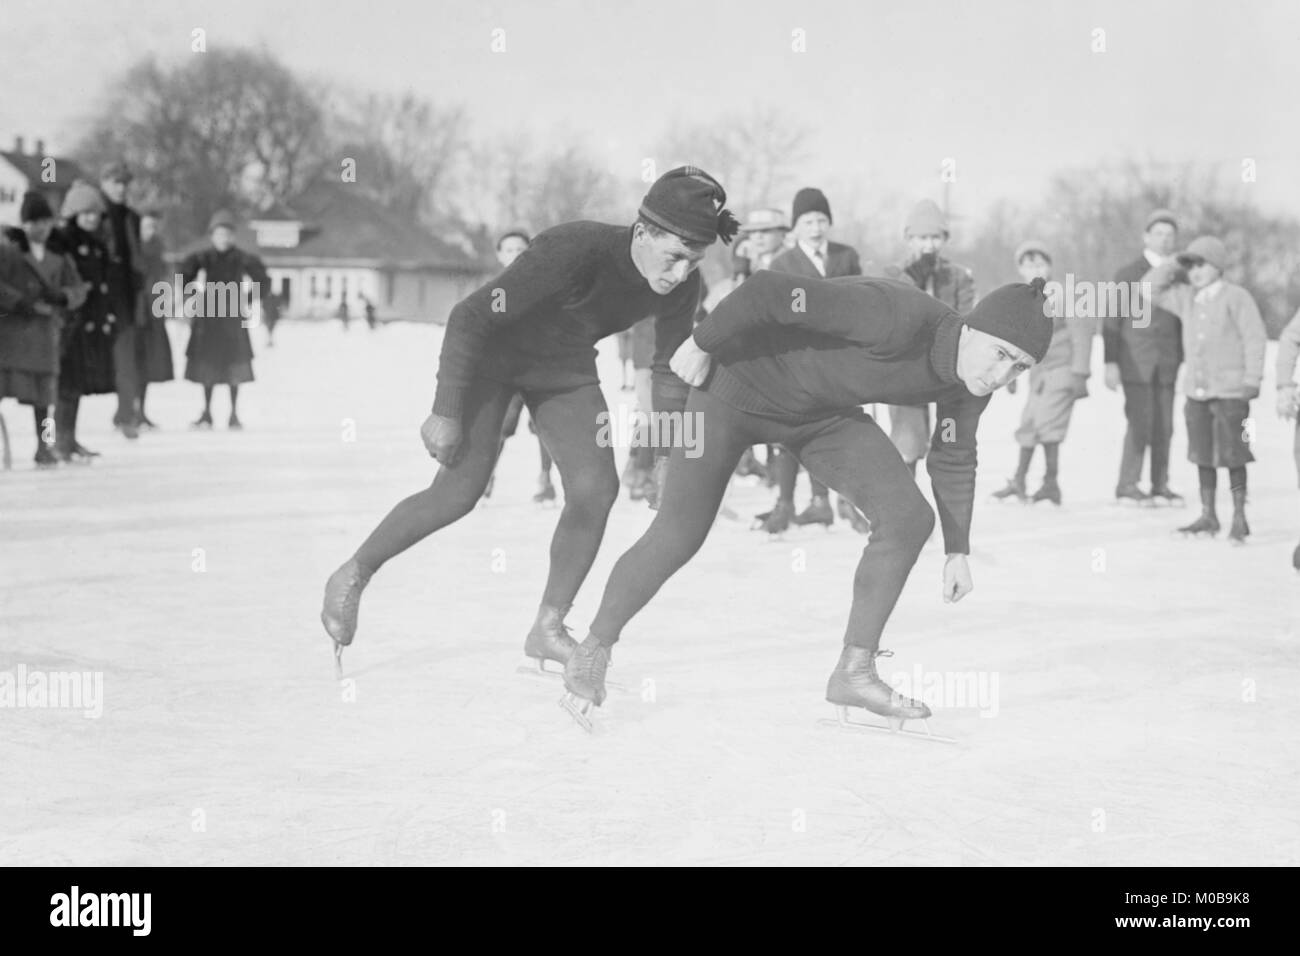 Ice Skating in Central Park - Stock Image